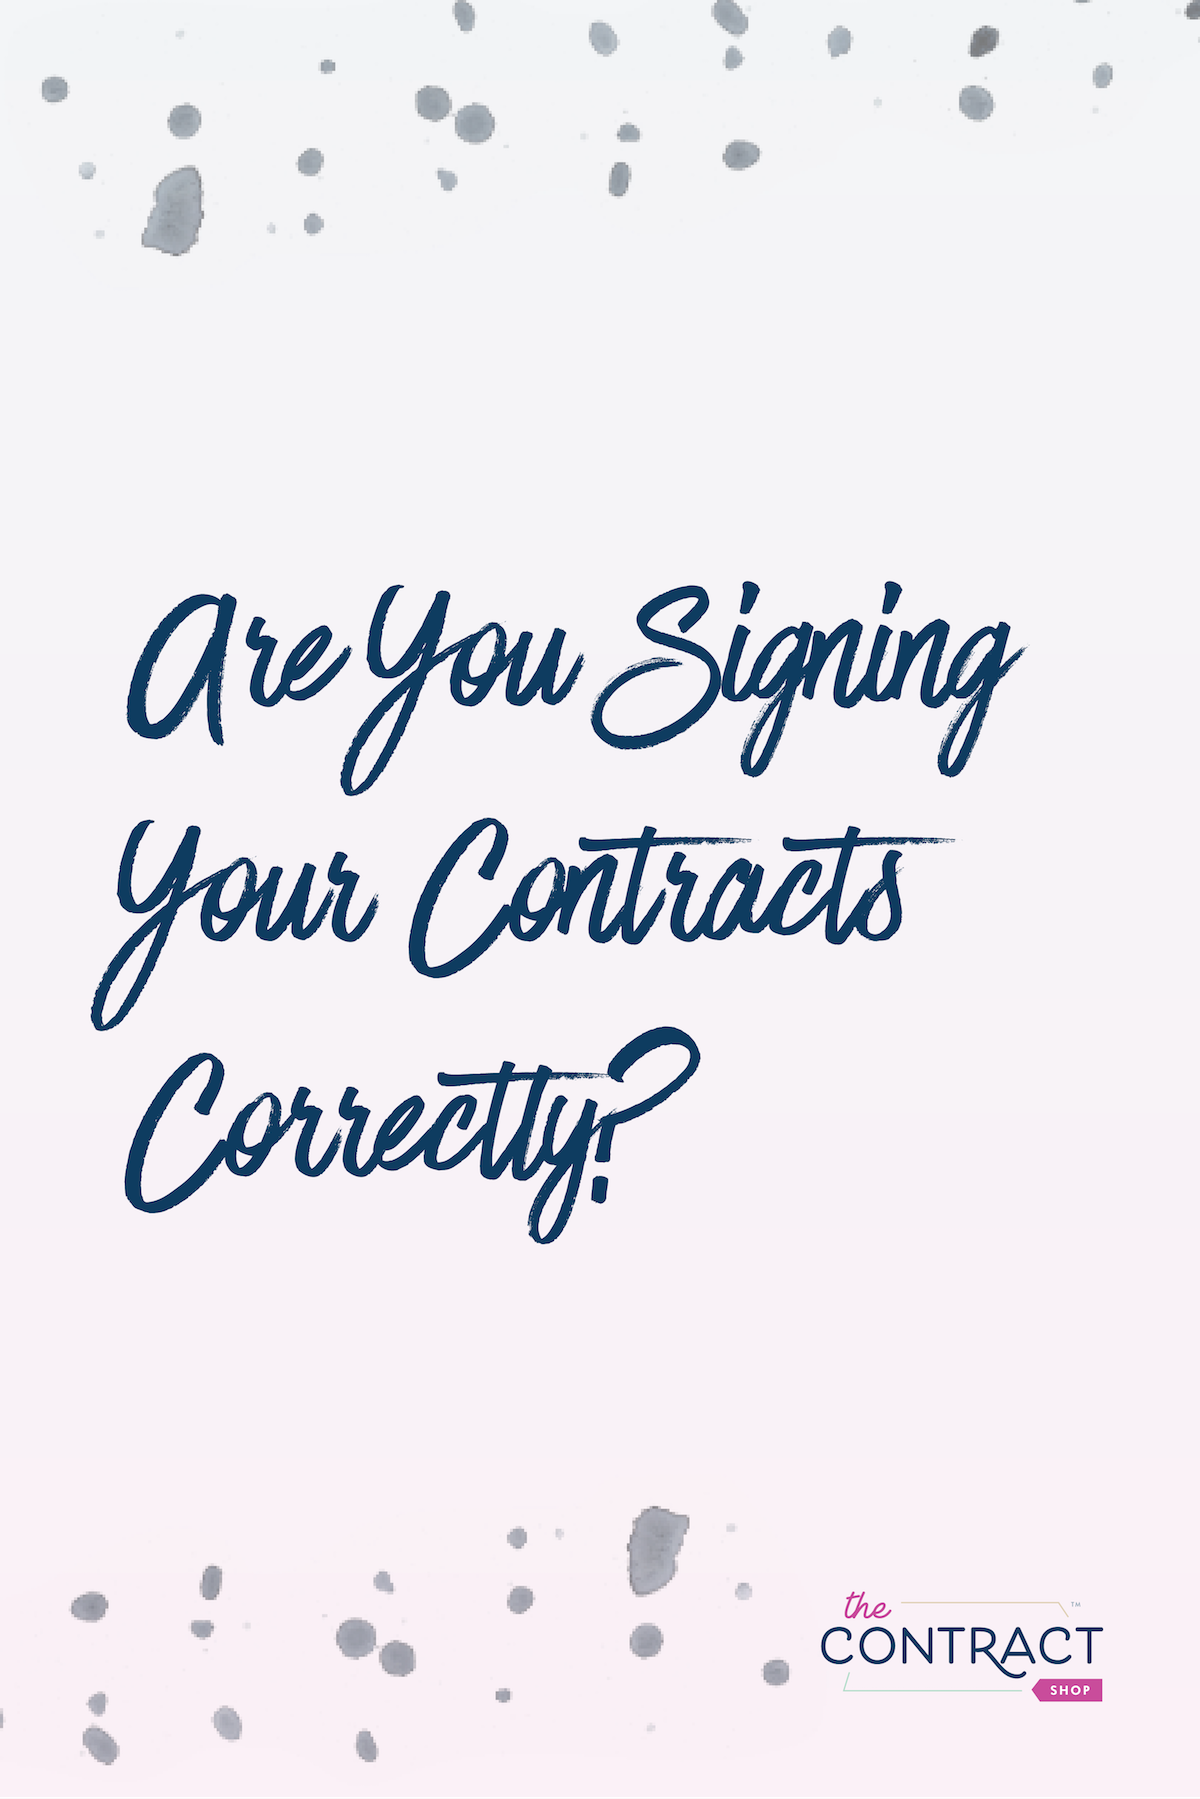 how do you sign a contract #business #entrepreneur